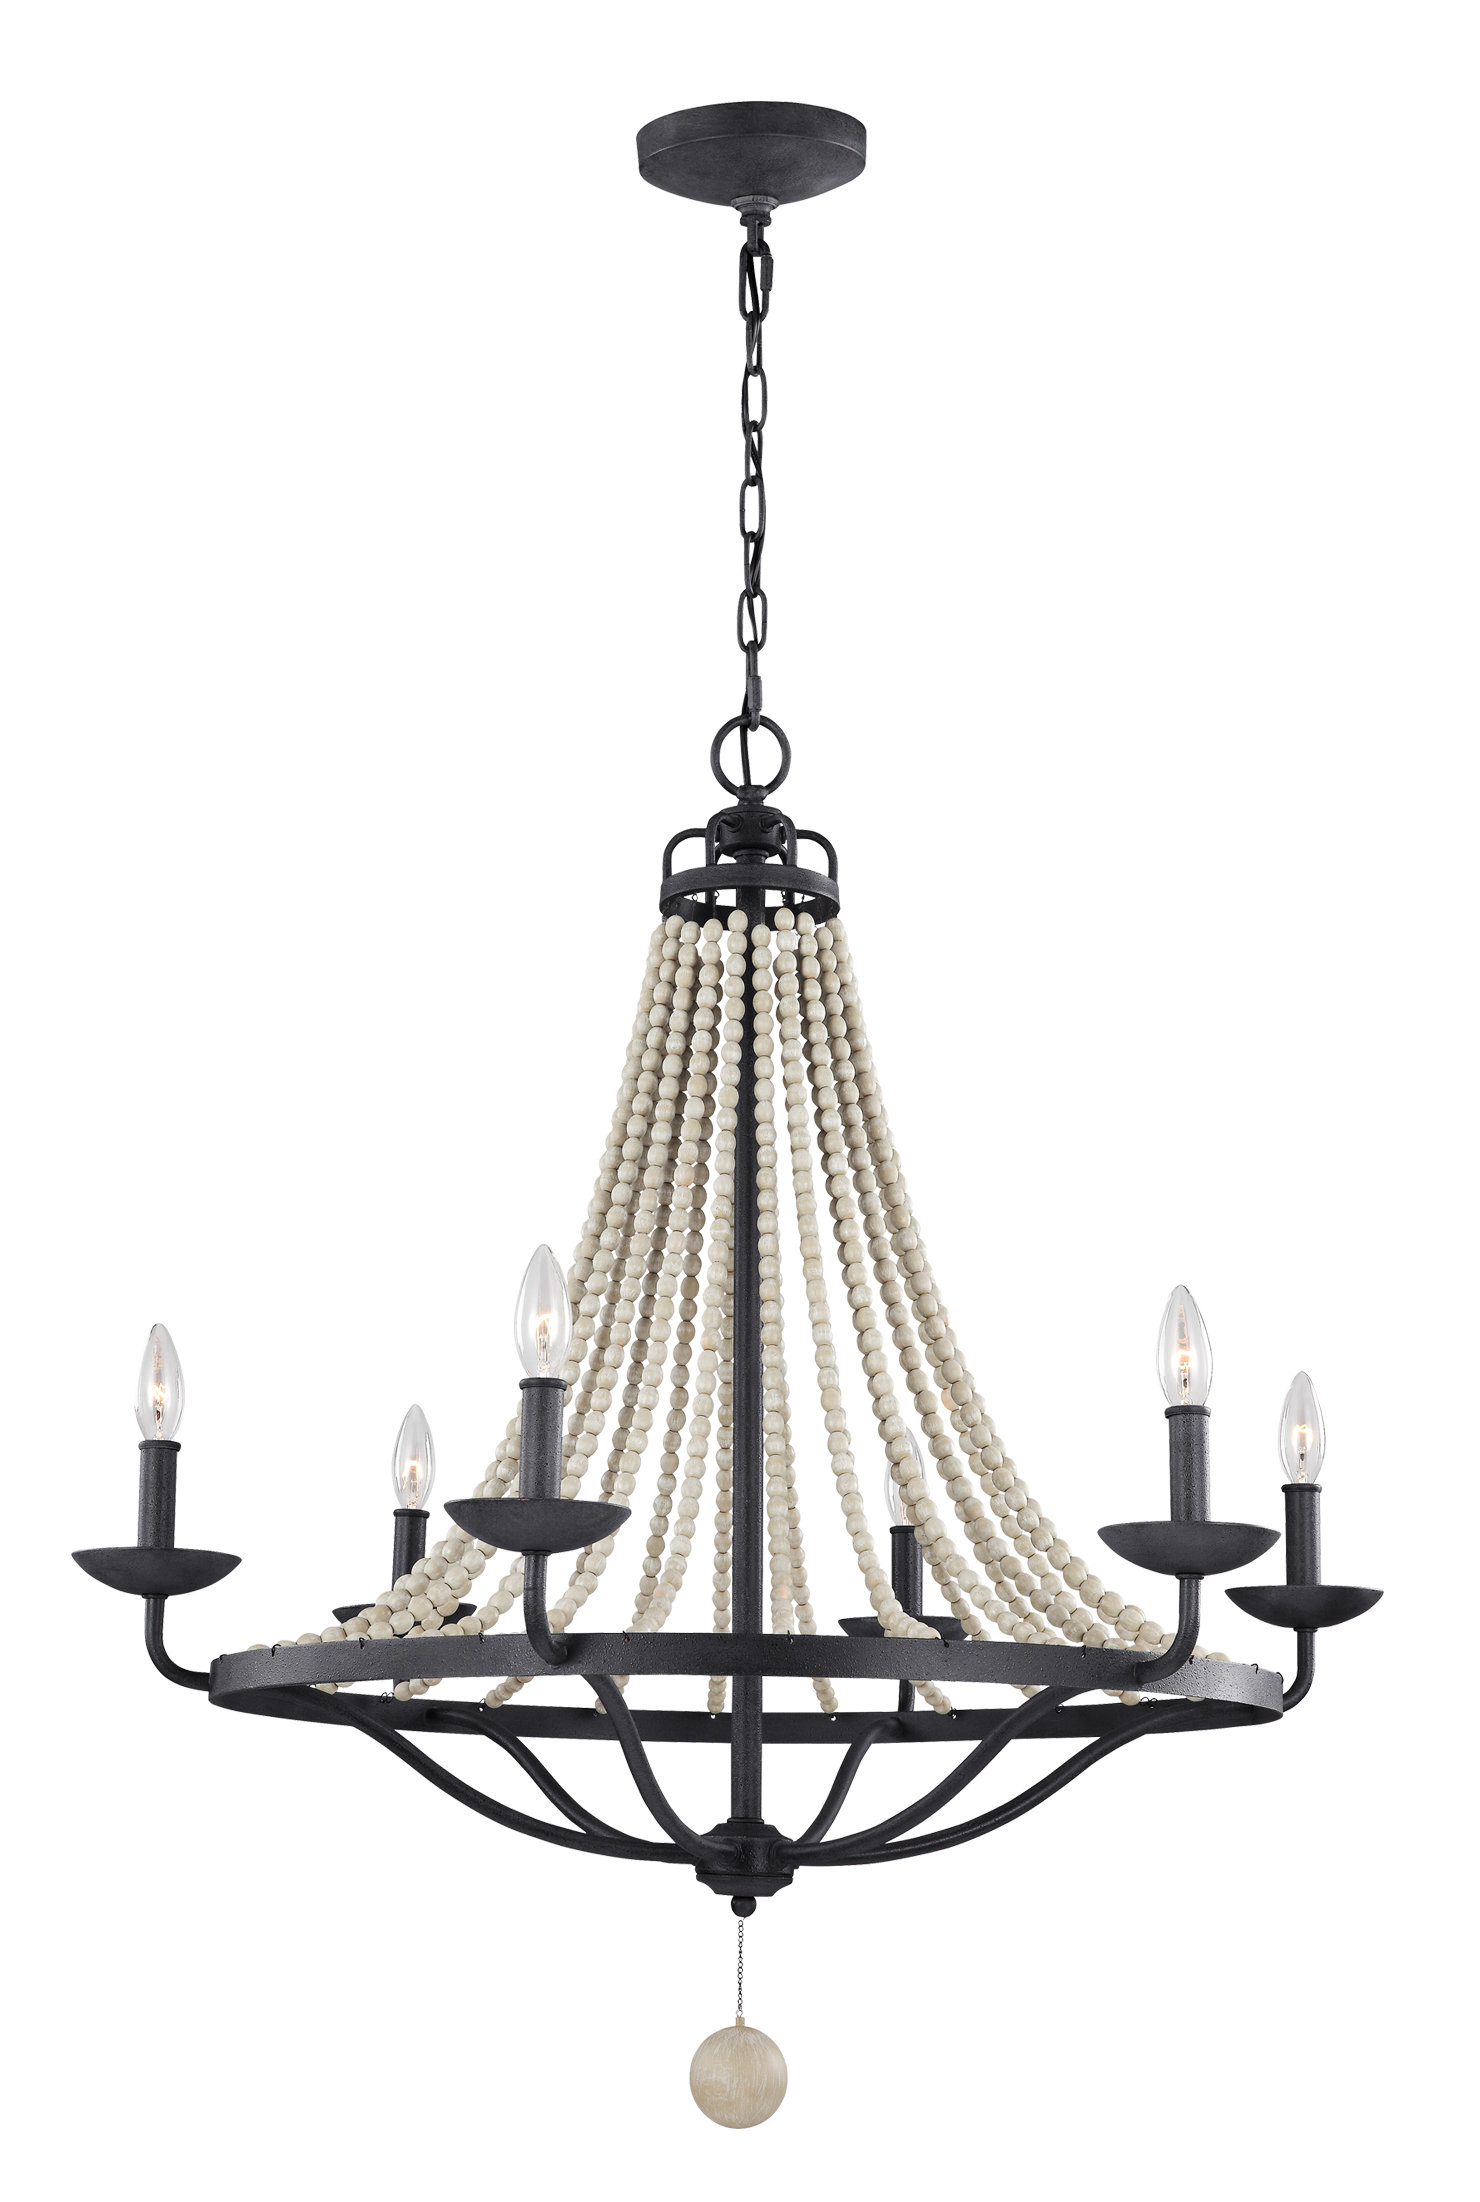 Duron 5 Light Empire Chandeliers With Popular Granger 6 Light Empire Chandelier (View 10 of 25)